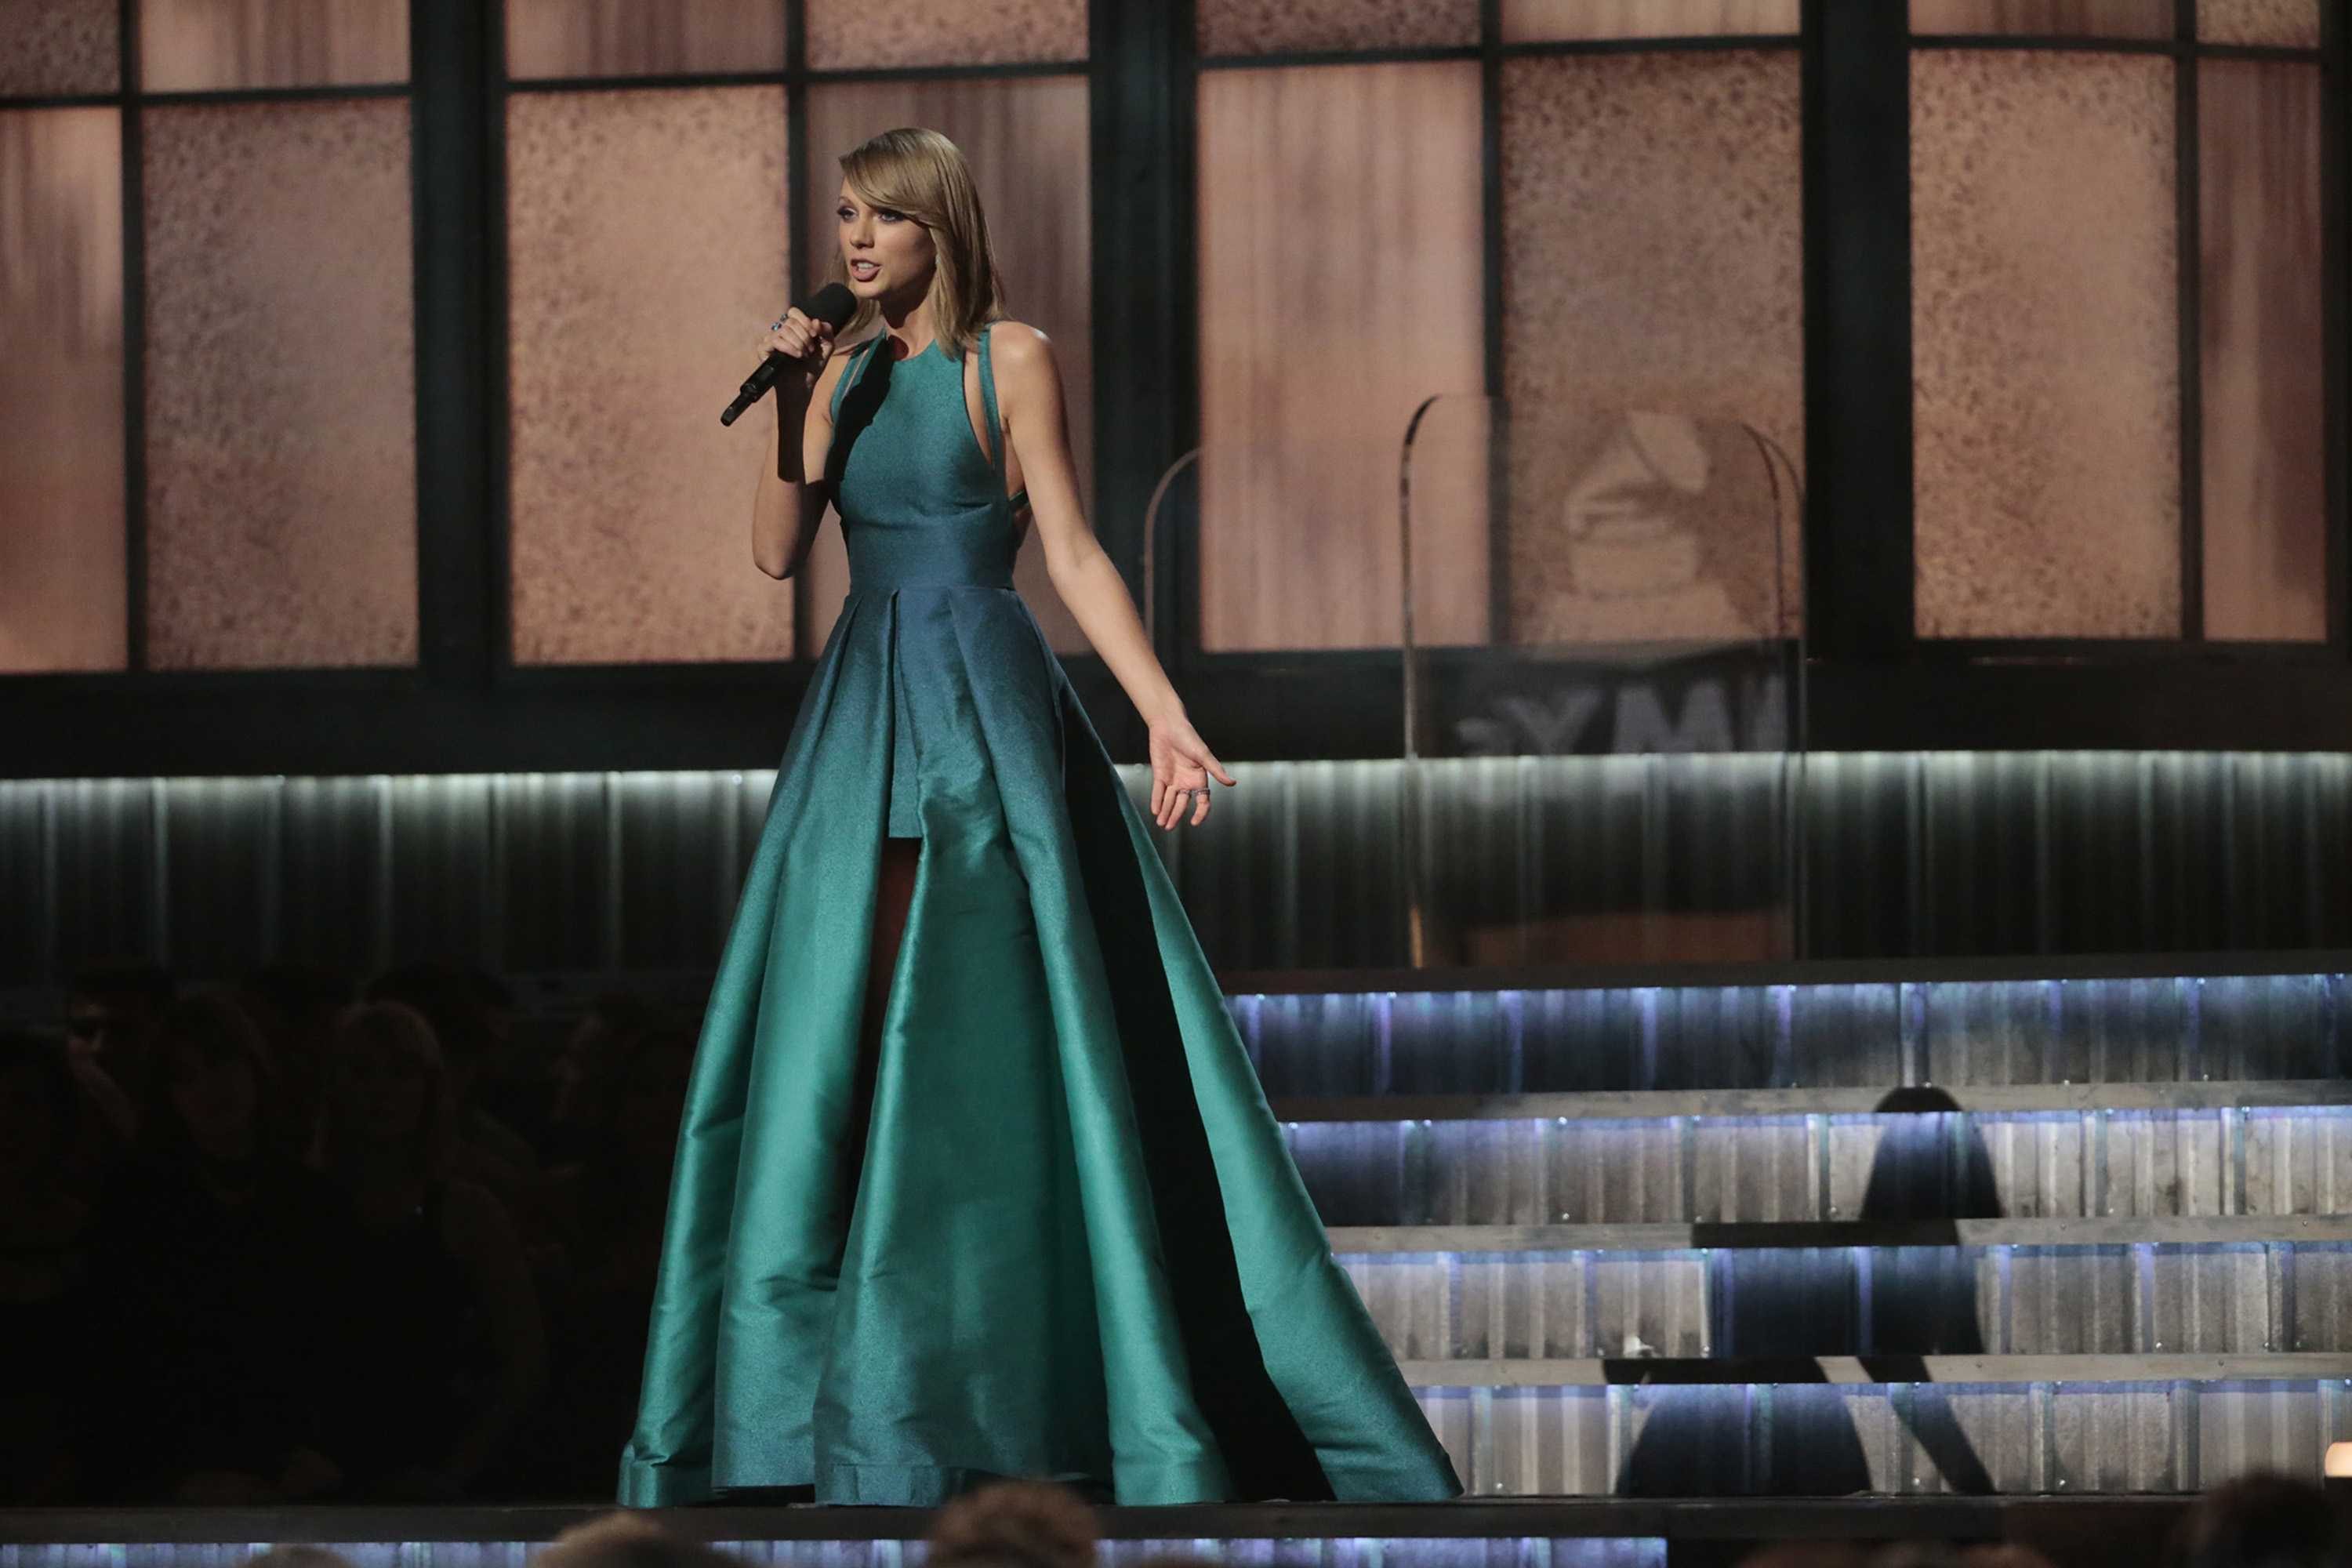 Taylor Swift on stage at the 57th Annual Grammy Awards at Staples Center in Los Angeles on Sunday, Feb. 8, 2015. (Robert Gauthier/TNS)